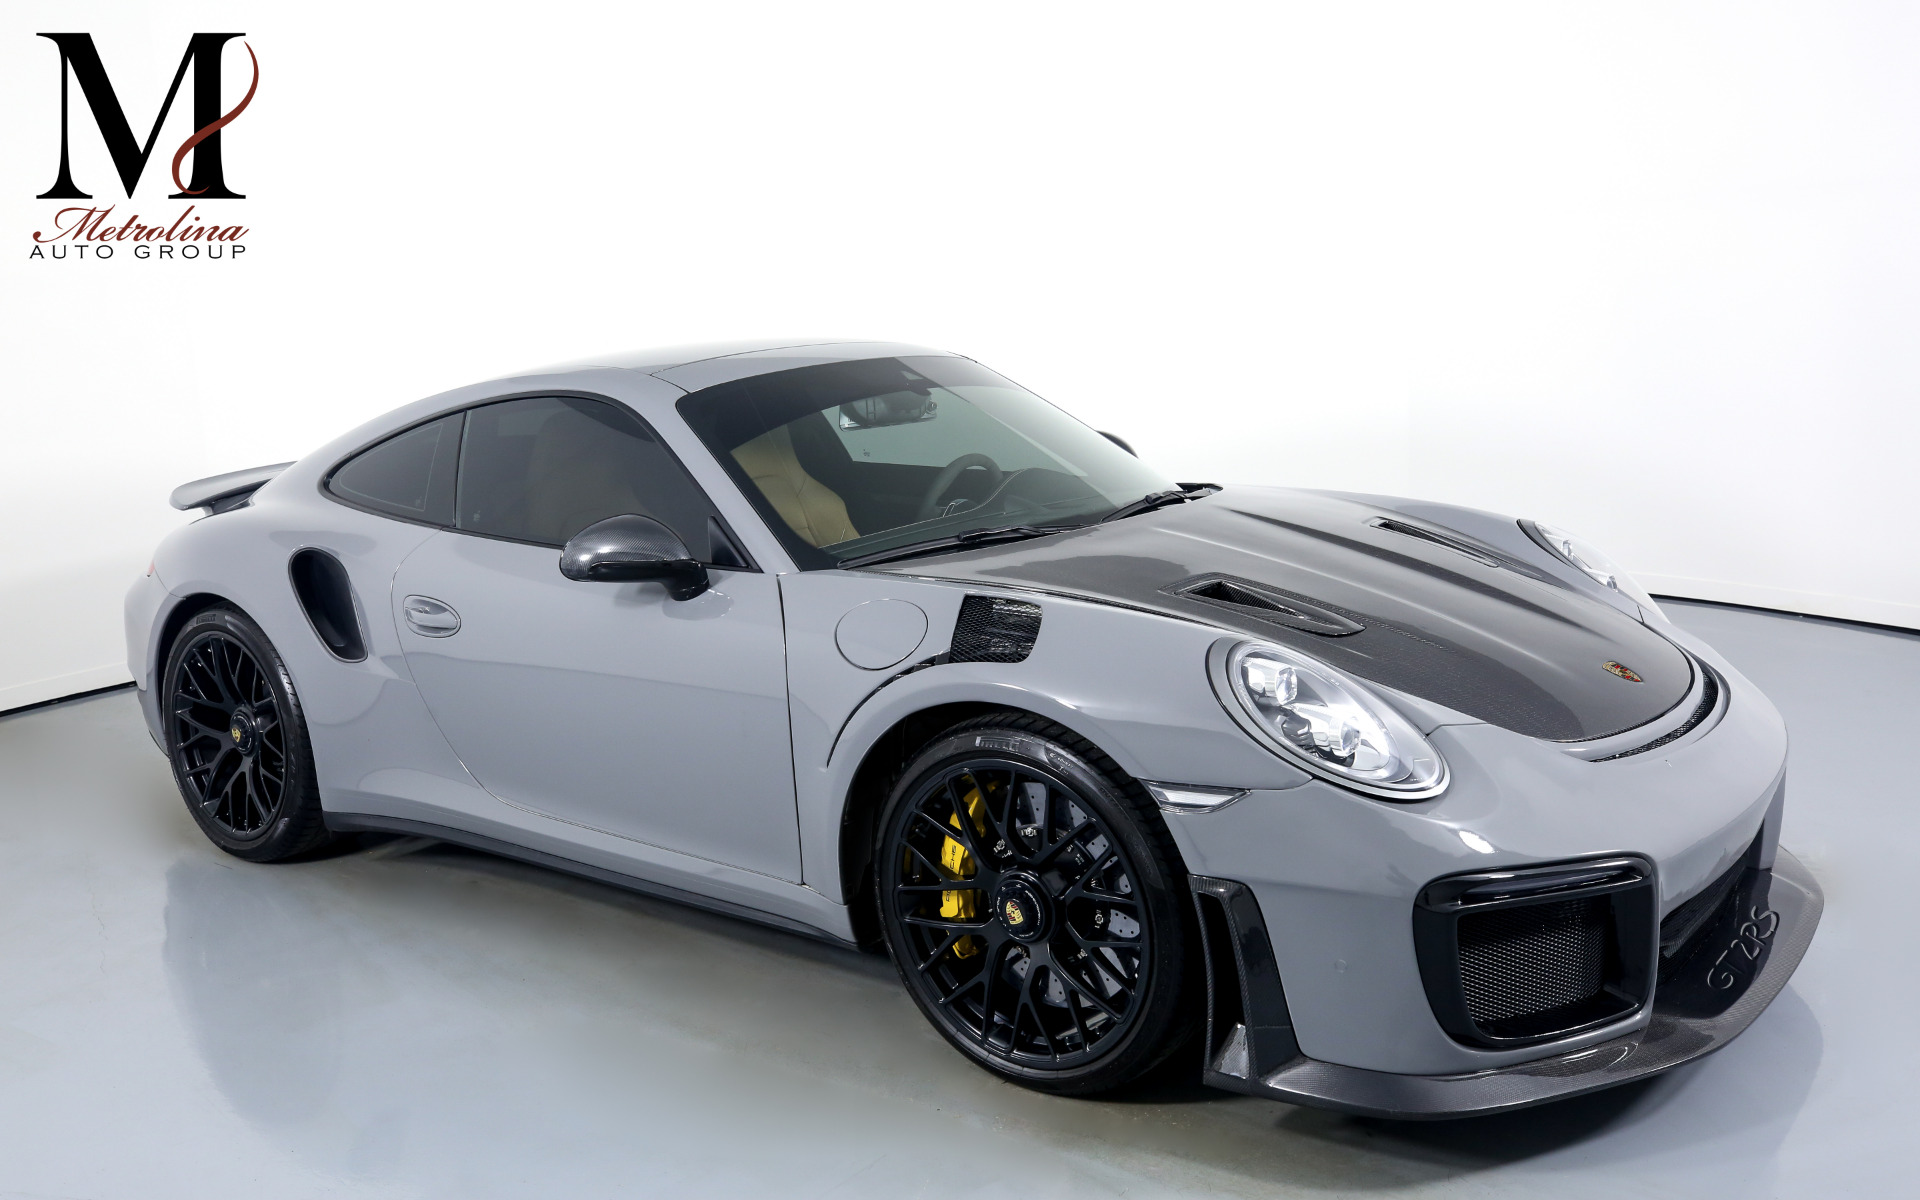 Used 2014 Porsche 911 Turbo S for sale Call for price at Metrolina Auto Group in Charlotte NC 28217 - 1